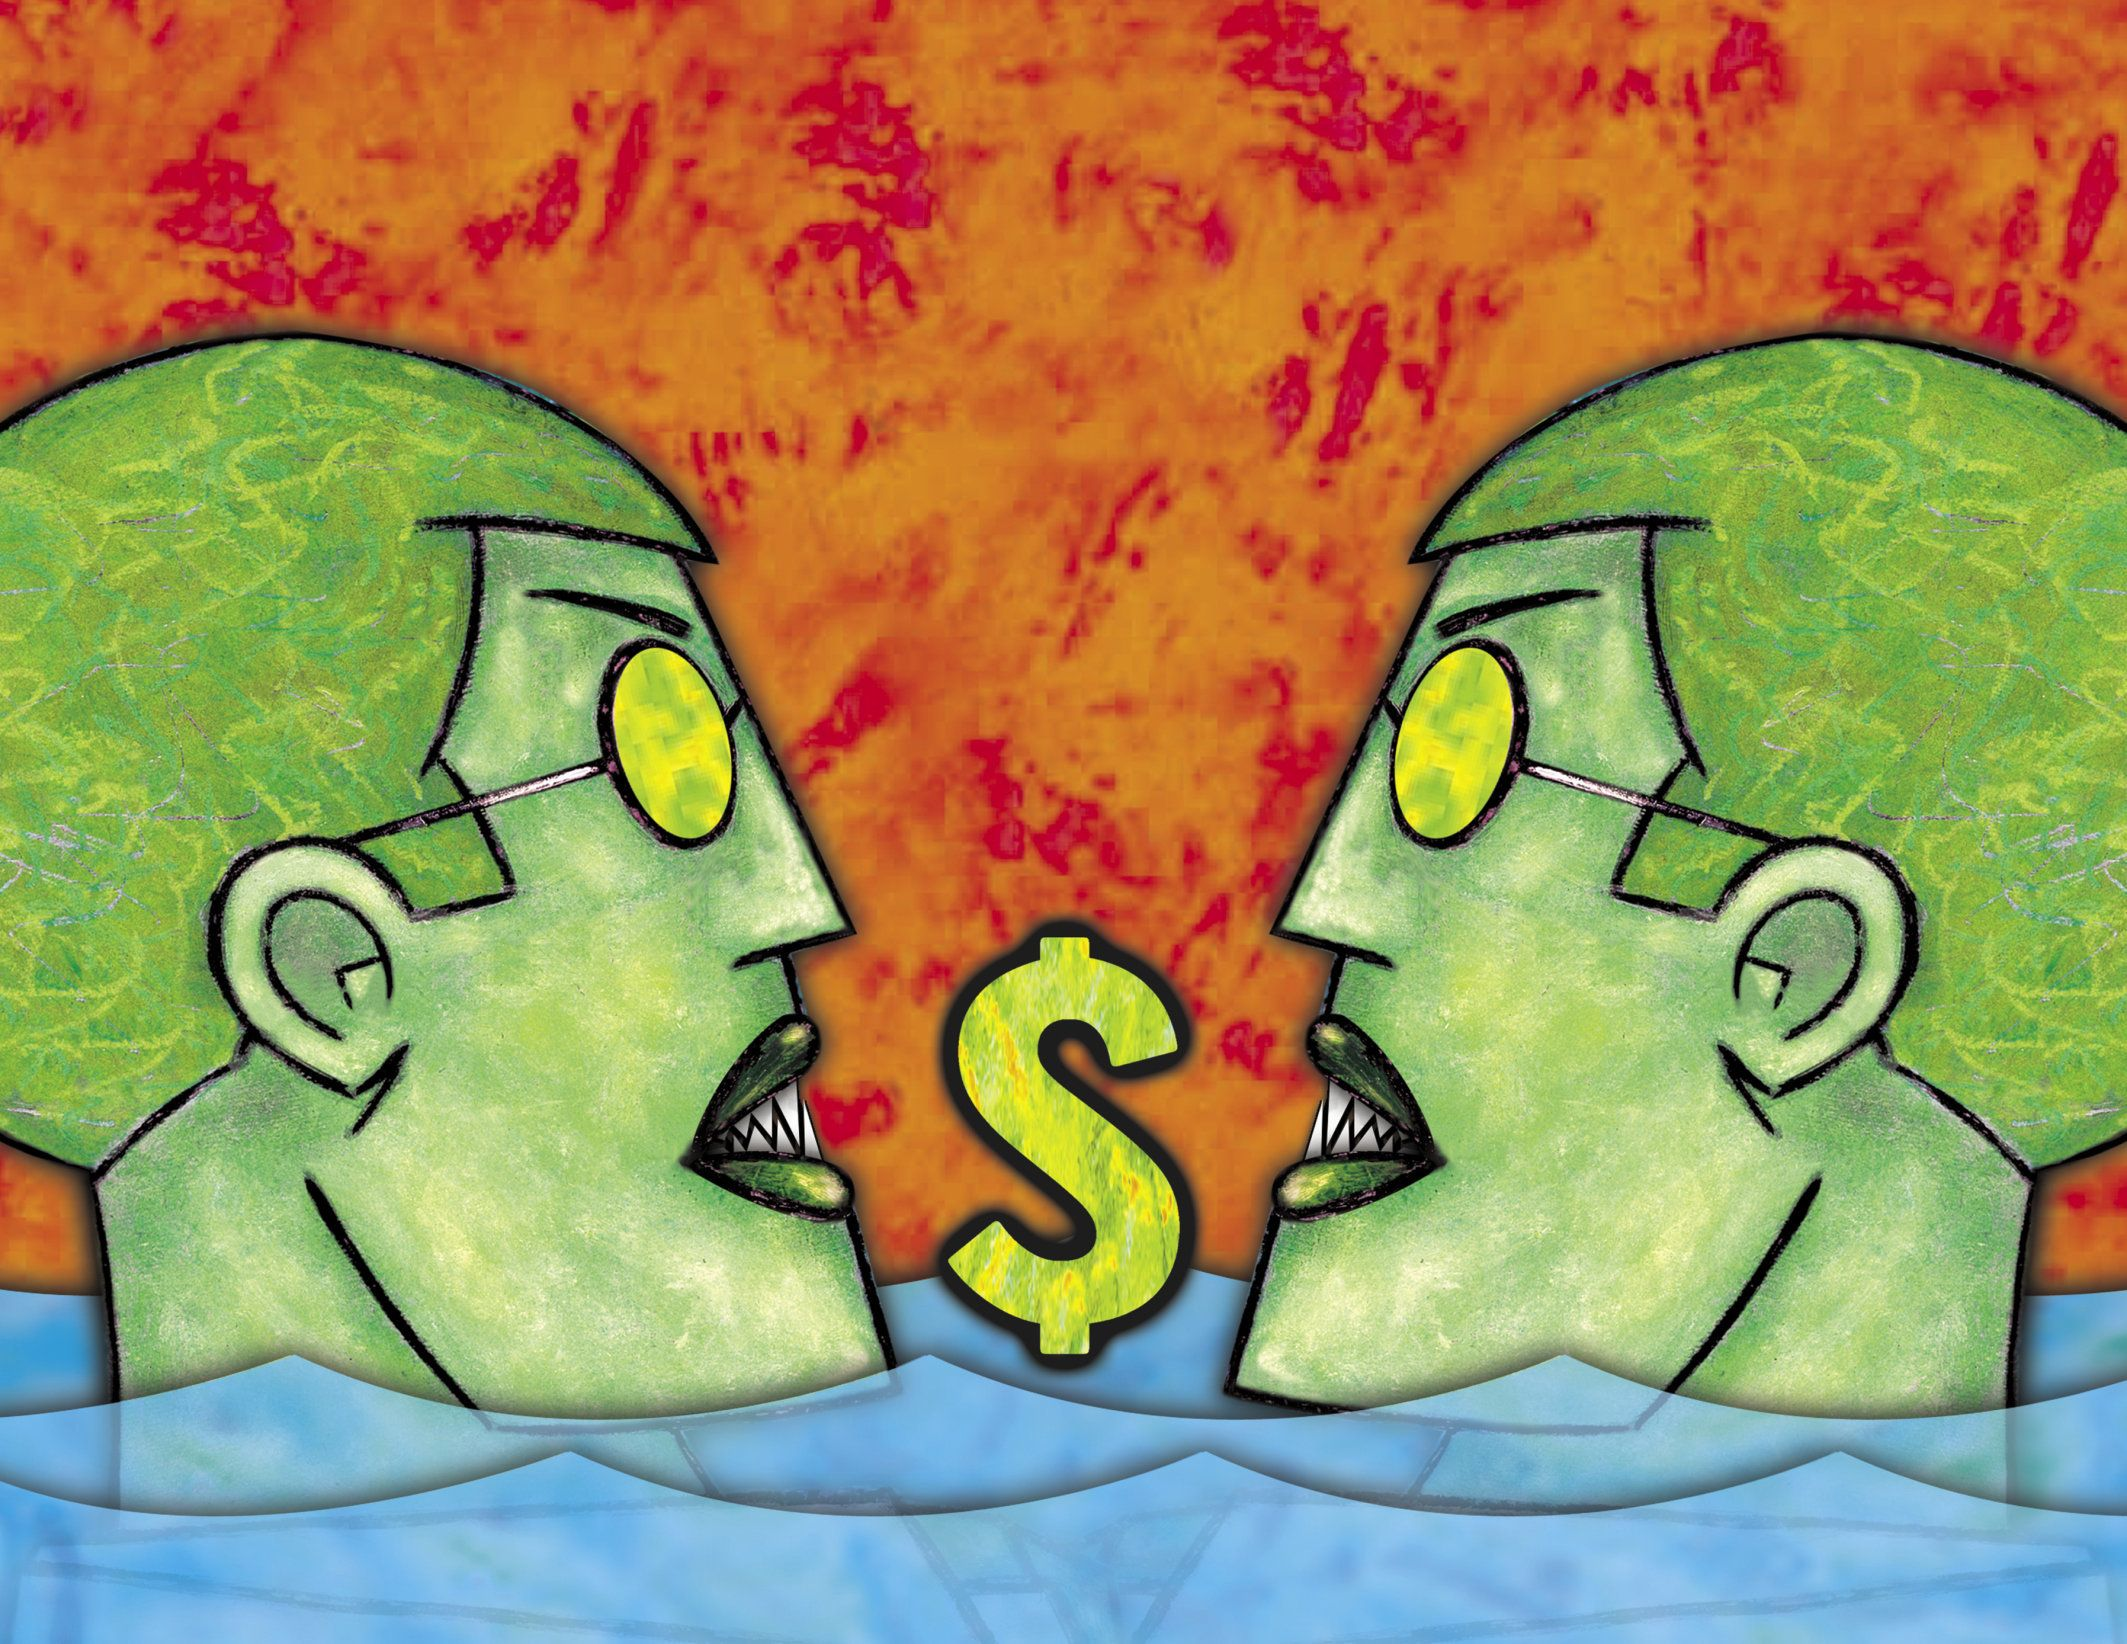 An illustration of two green people in water with a dollar sign between them